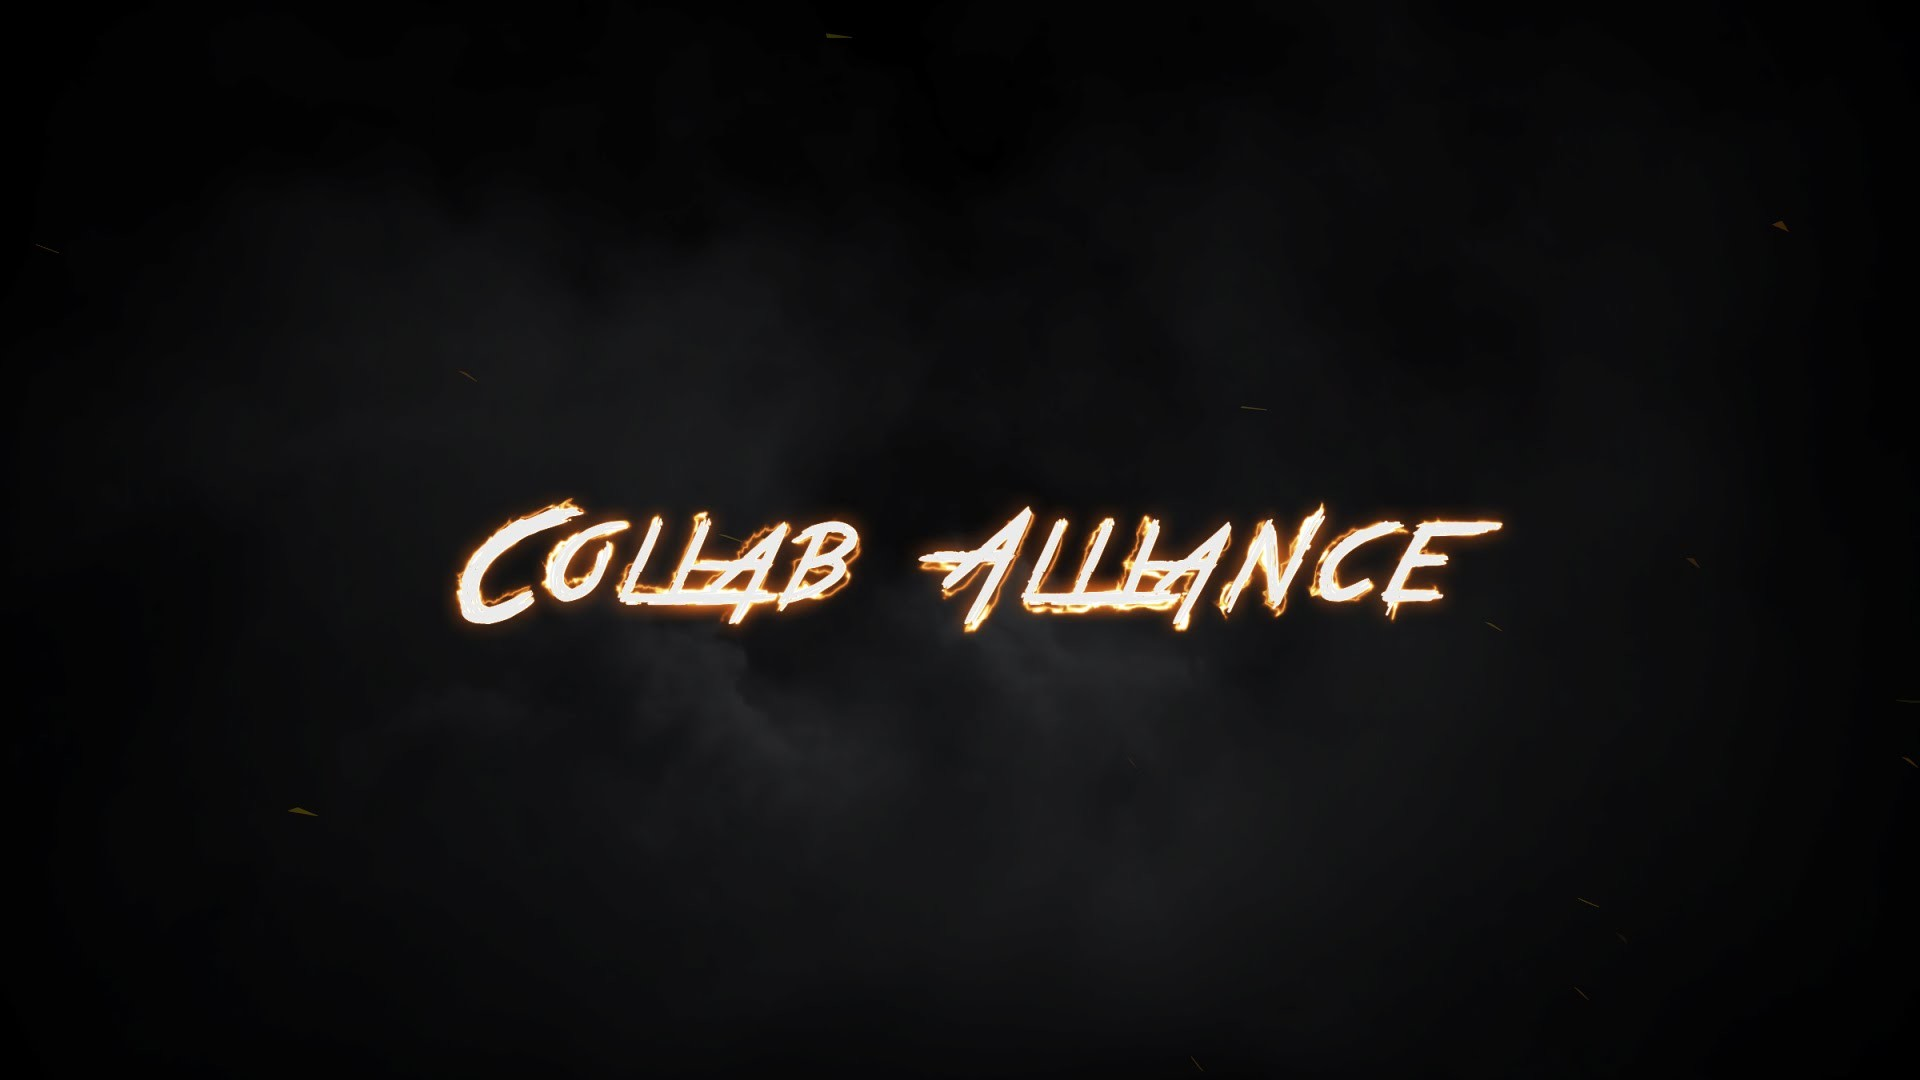 Introducing Collab Alliance – Featuring The Biggest Youtubers In Music  Production